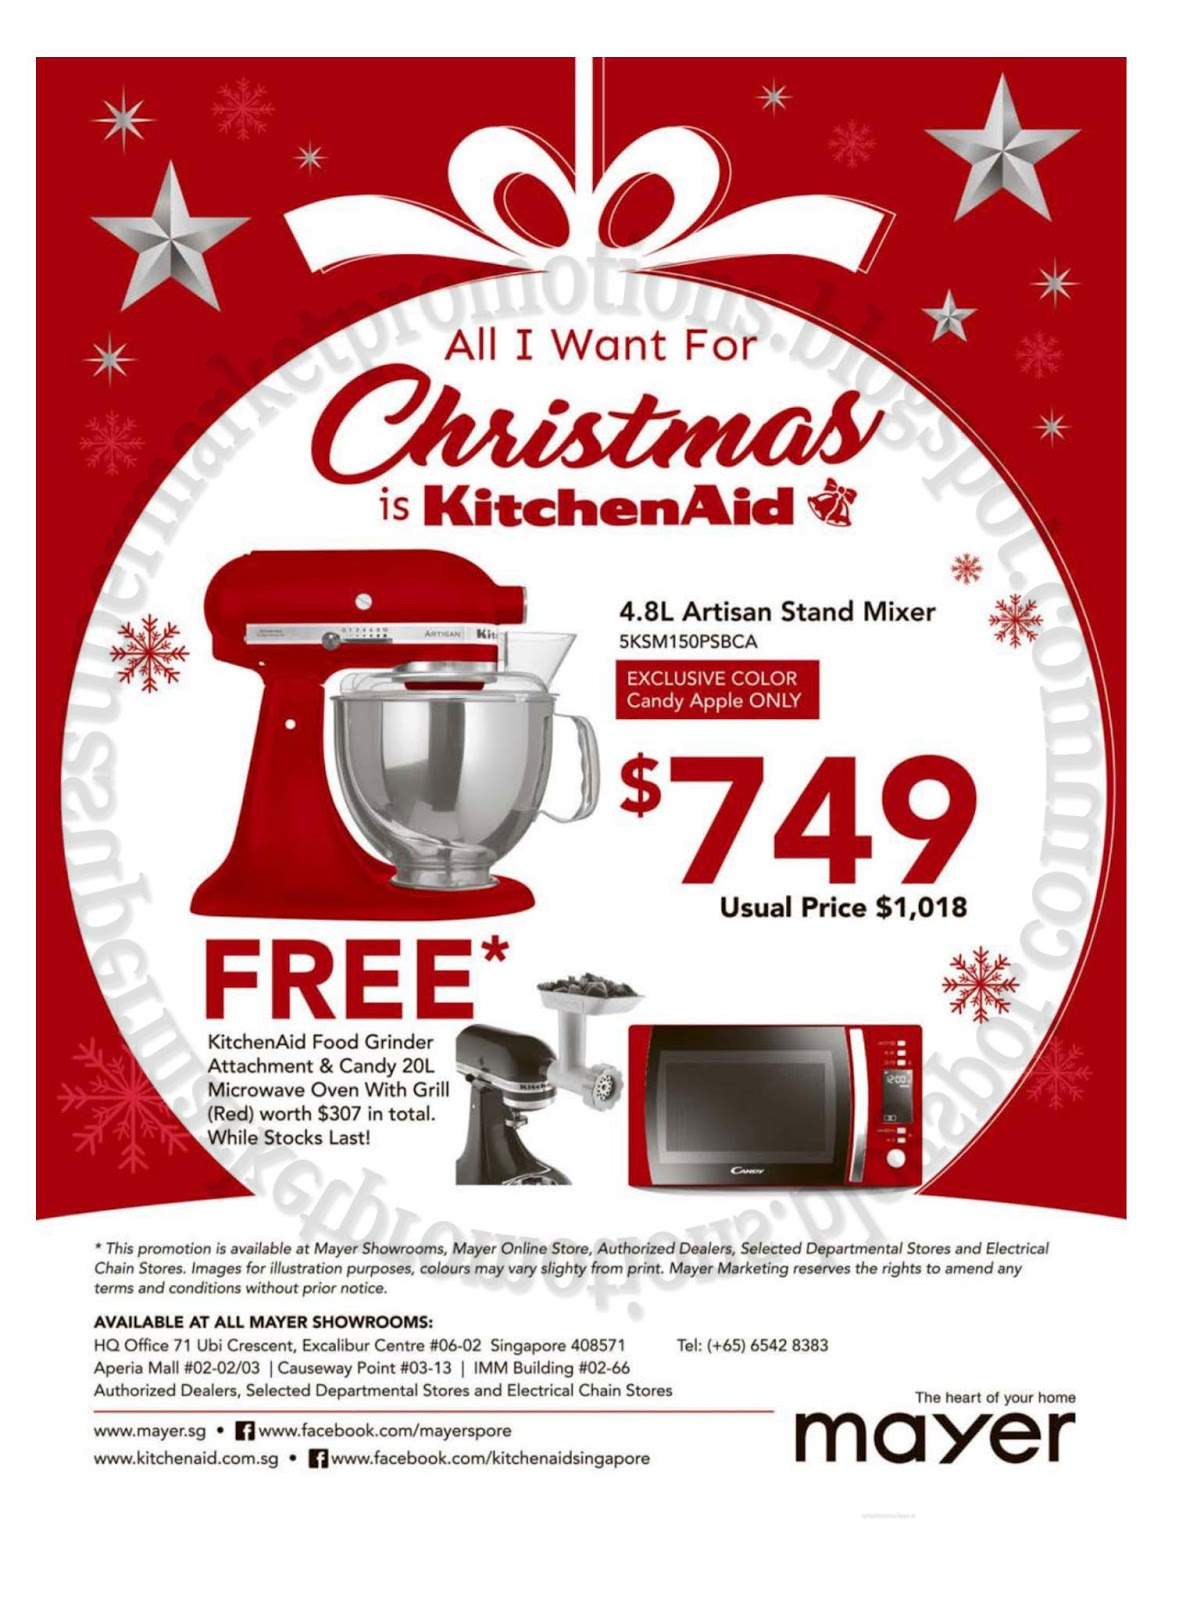 Superieur Mayer KitchenAid Christmas Promotion 10 November 2017 | Supermarket  Promotions